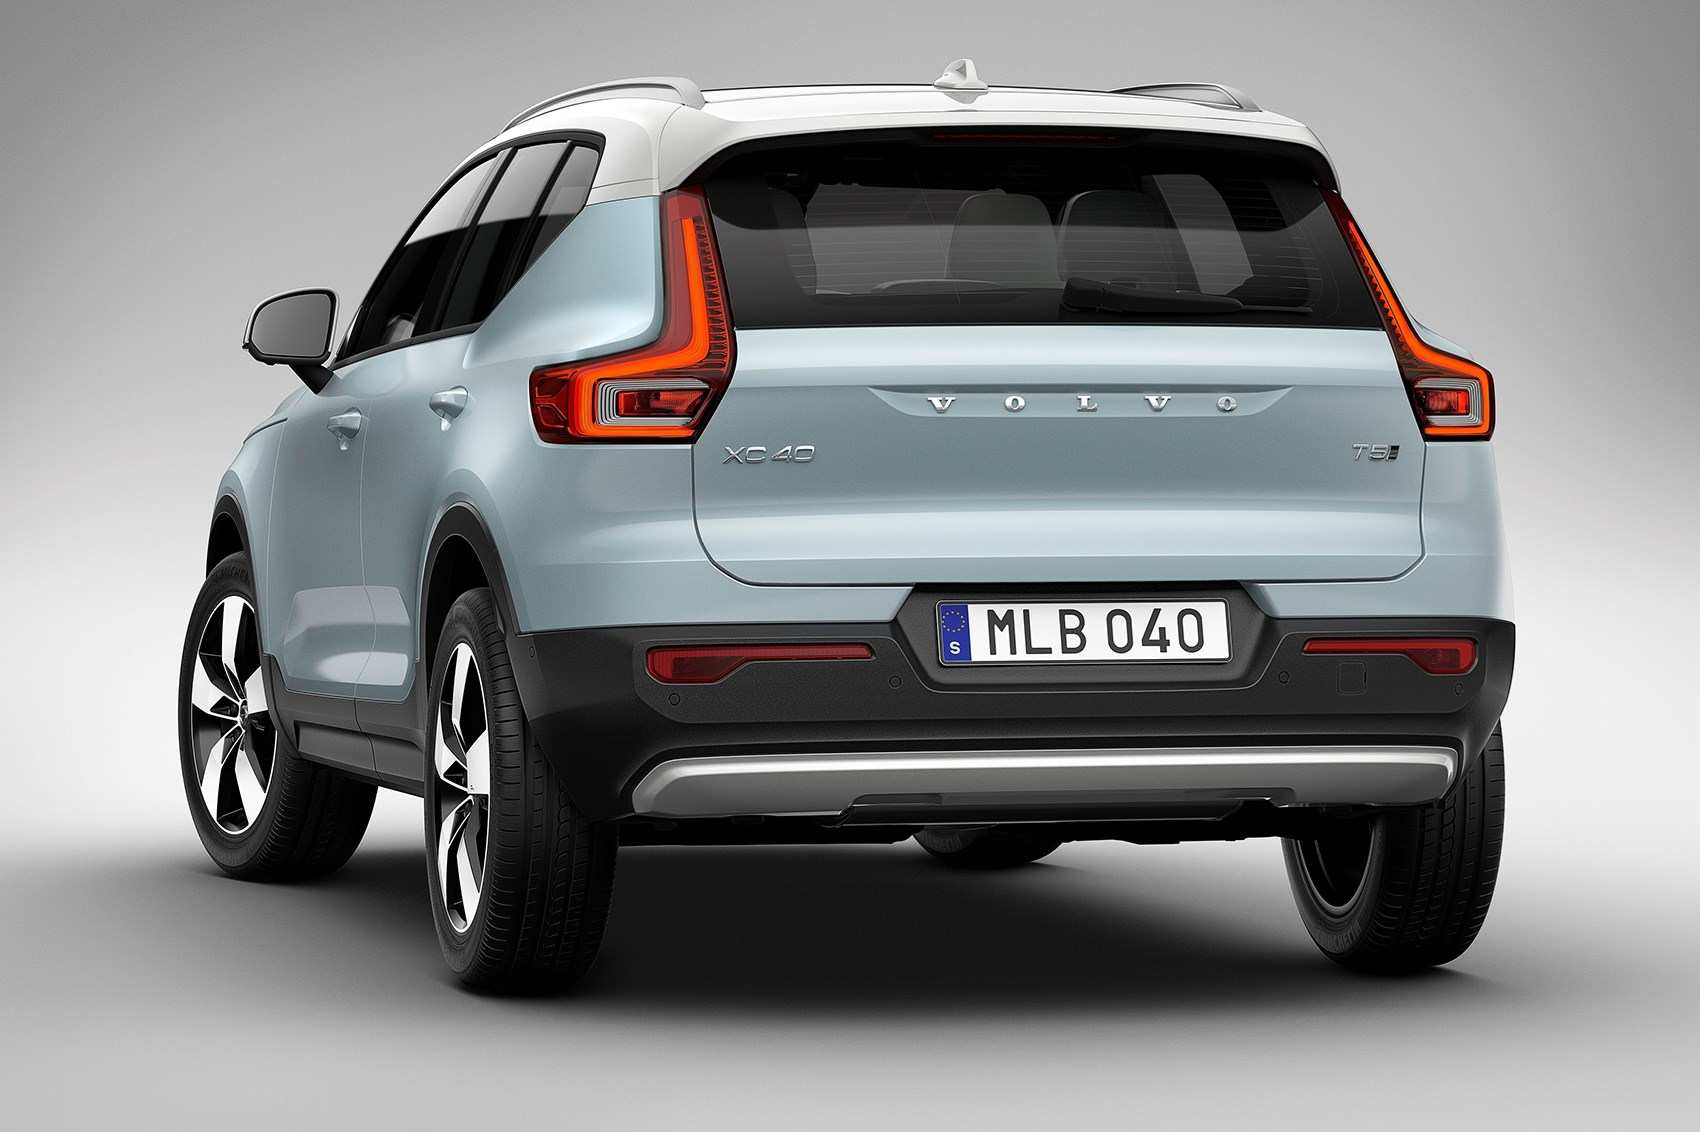 35 New Volvo Xc40 2020 Release Date Exterior and Interior with Volvo Xc40 2020 Release Date